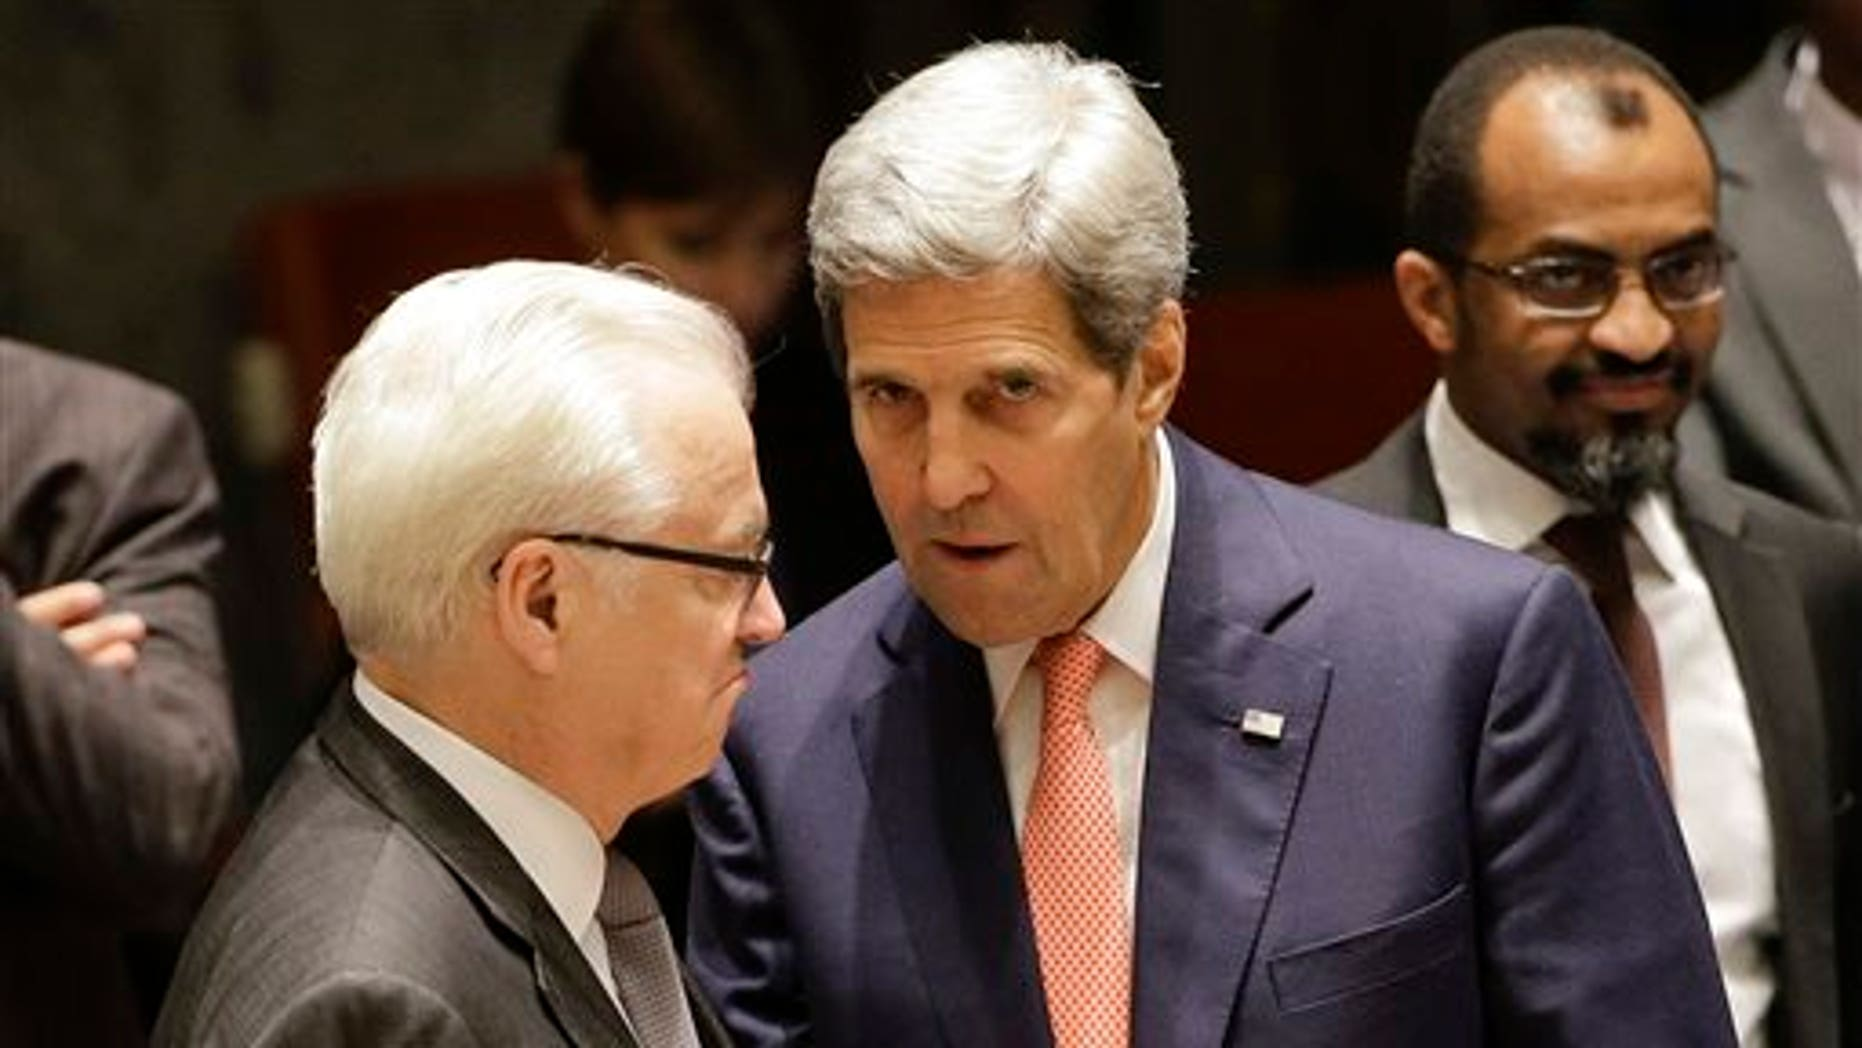 U.S. Secretary of State John Kerry, right, talks with Vitaly Churkin, Russian permanent resident to the United Nations, before a meeting of the U.N. Security Council, Friday, Sept. 19, 2014, at United Nations headquarters. The security council met Friday to discuss the situation in Iraq. (AP Photo/Julie Jacobson)